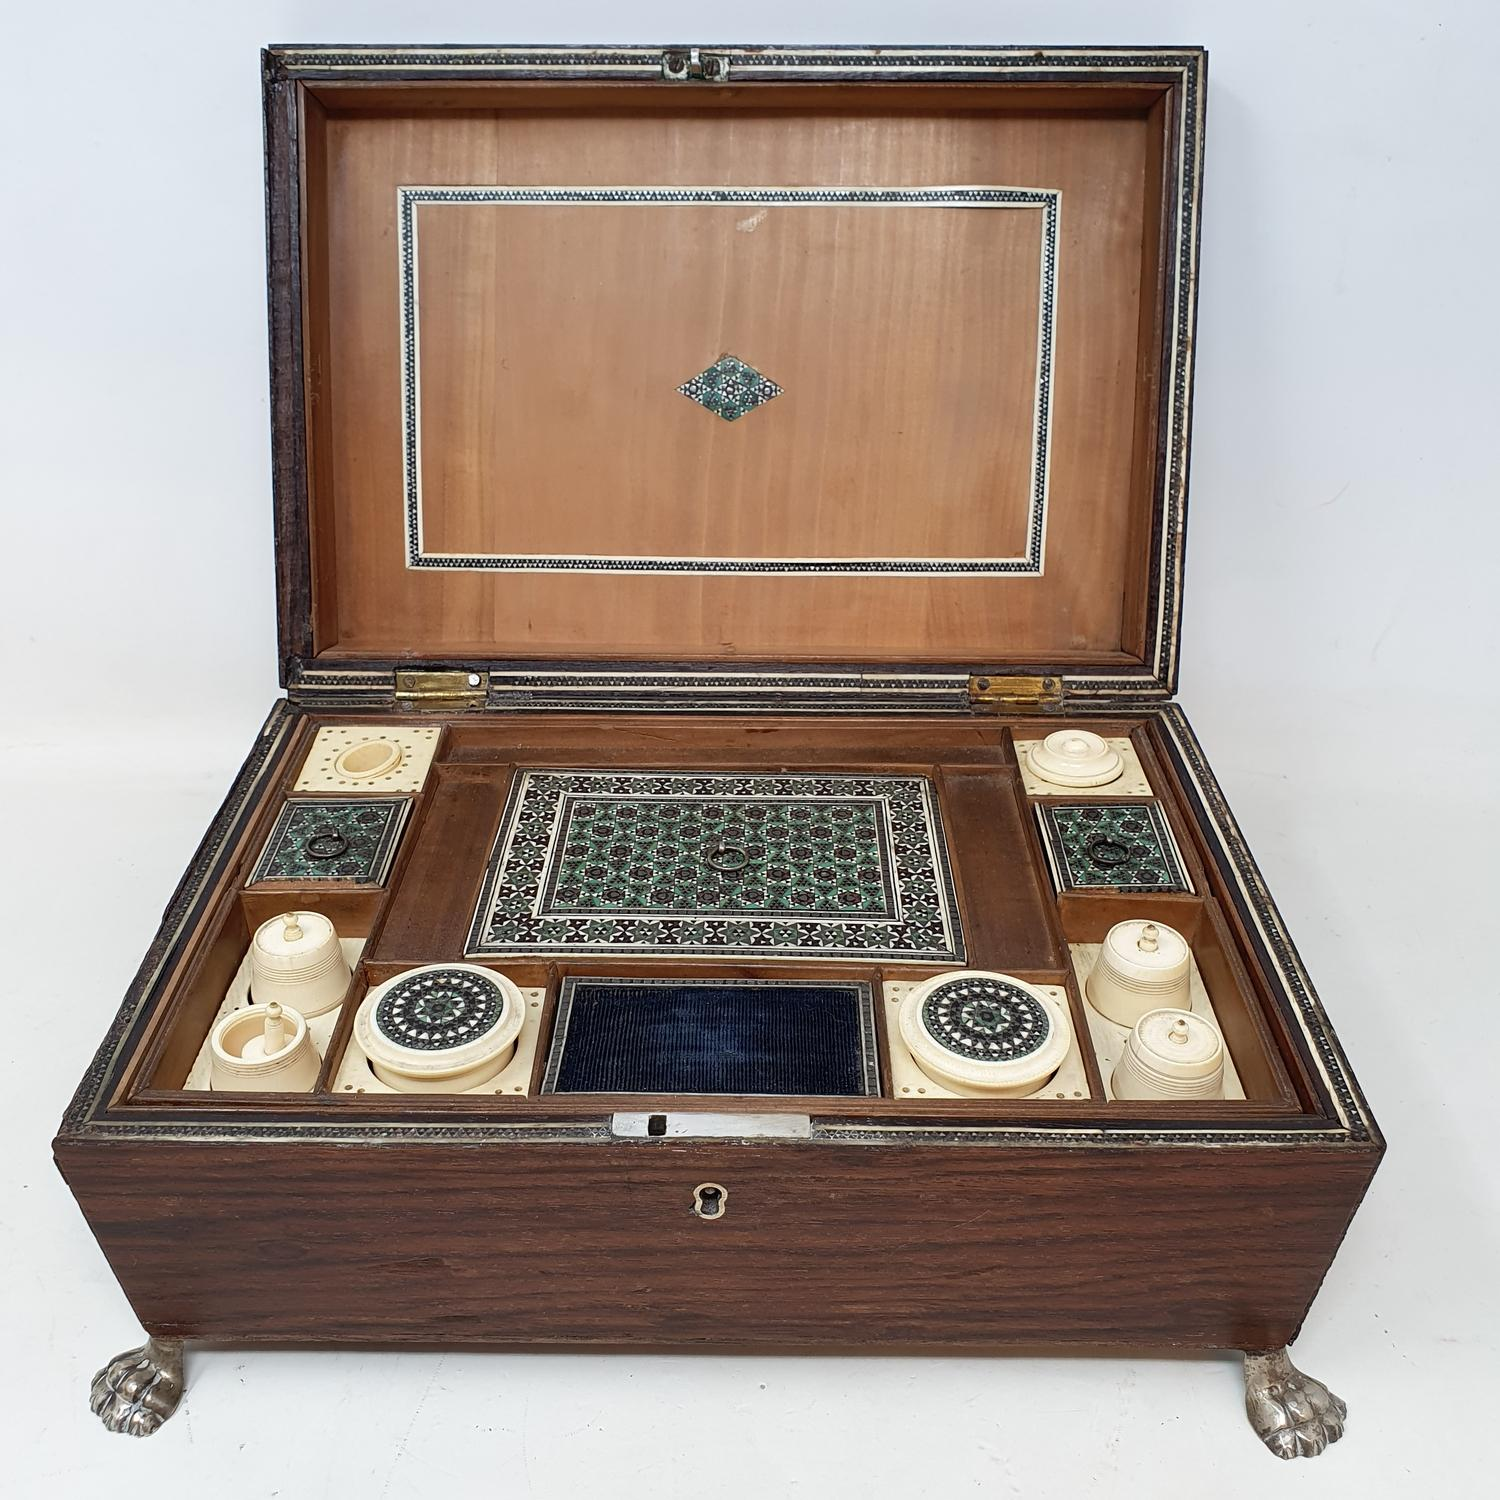 A 19th century rosewood sewing box,the fitted interior with various bone compartments, 26 cm wide